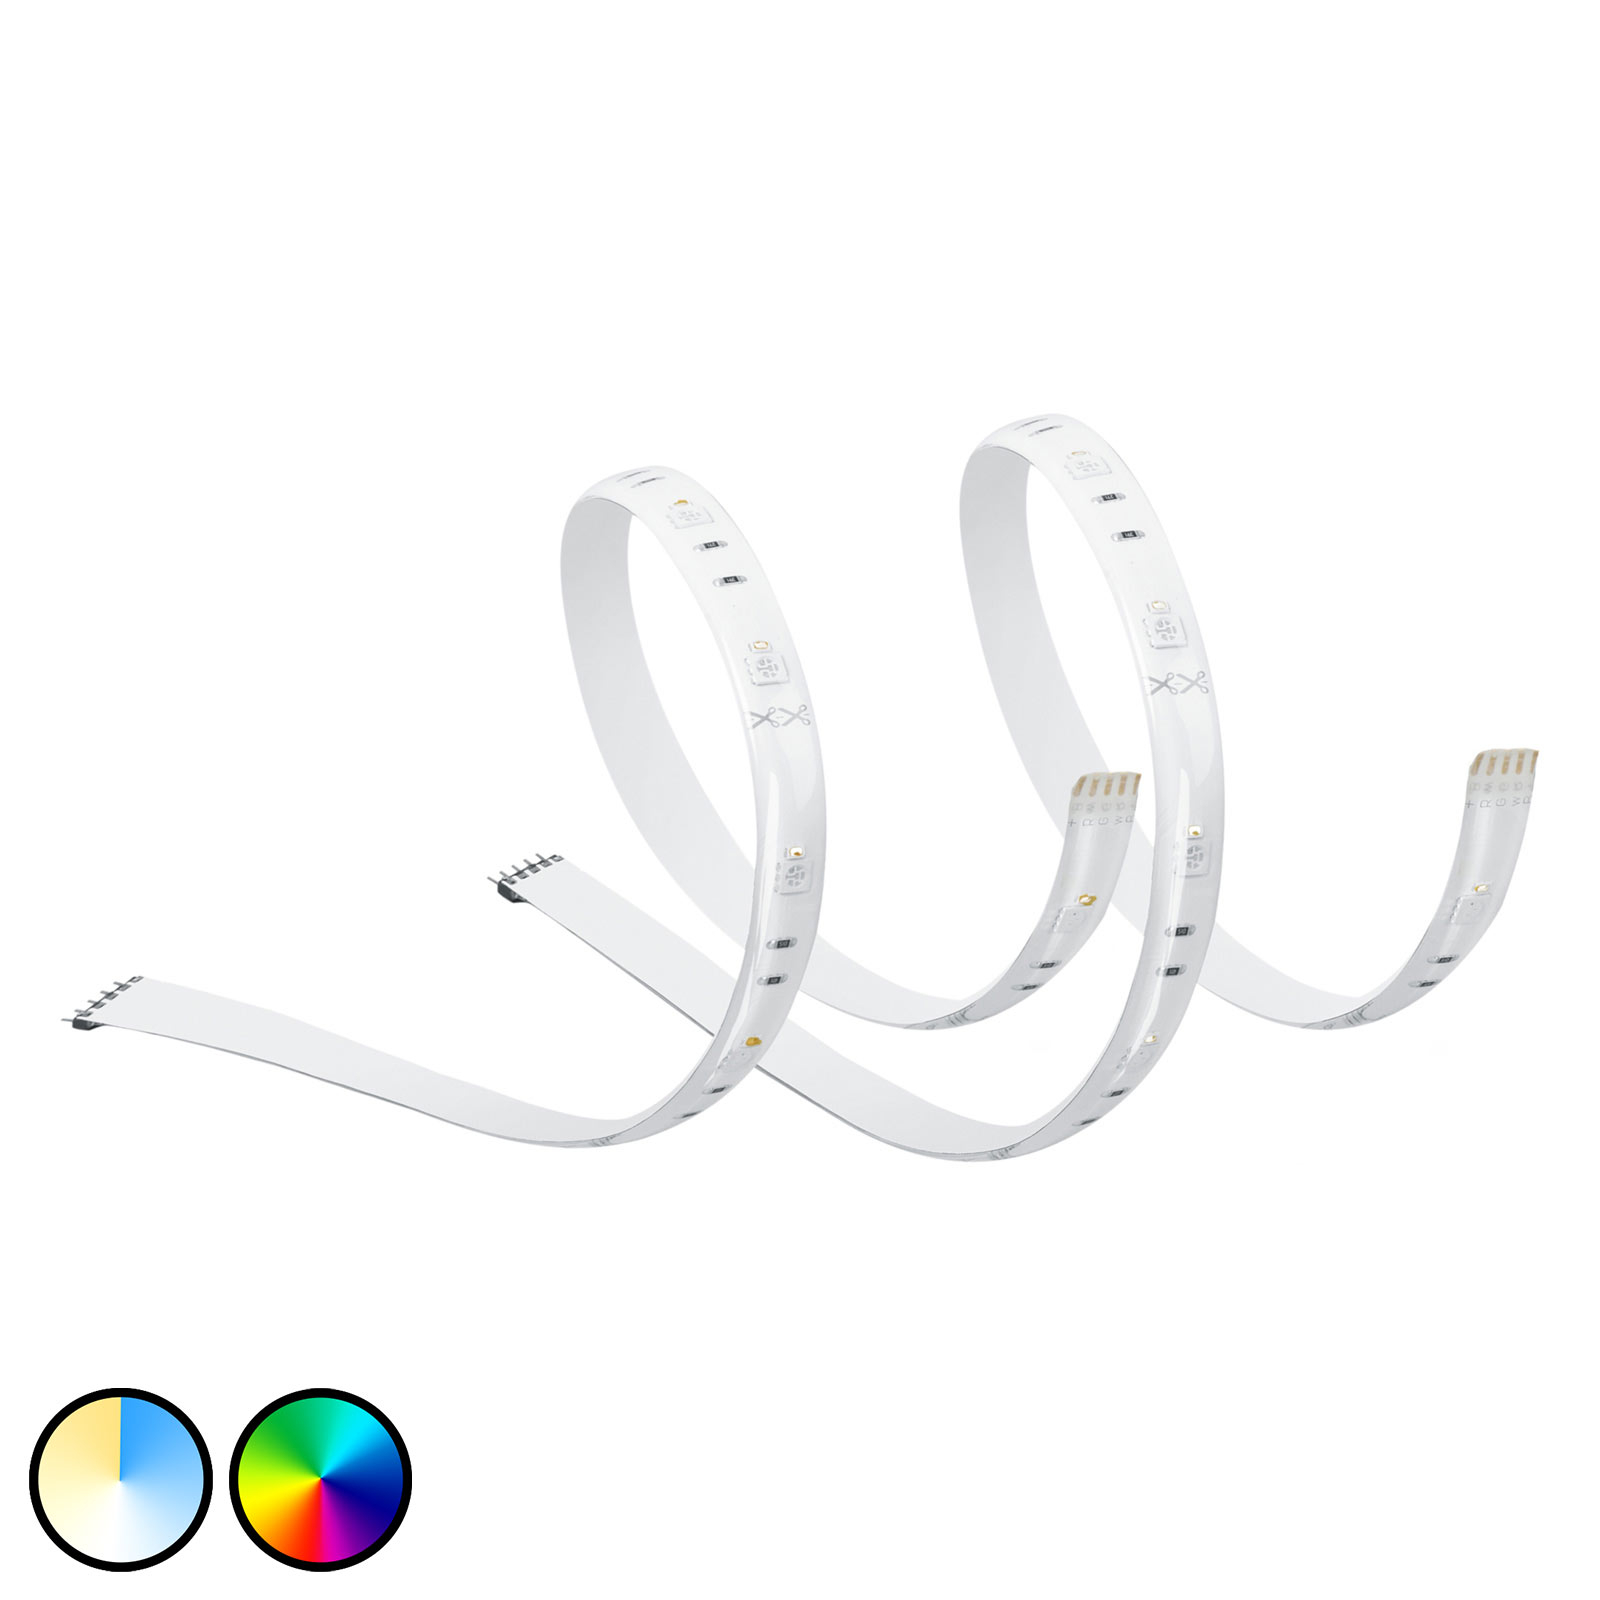 LEDVANCE SMART+ Flex LED strip, extension_6106215_1